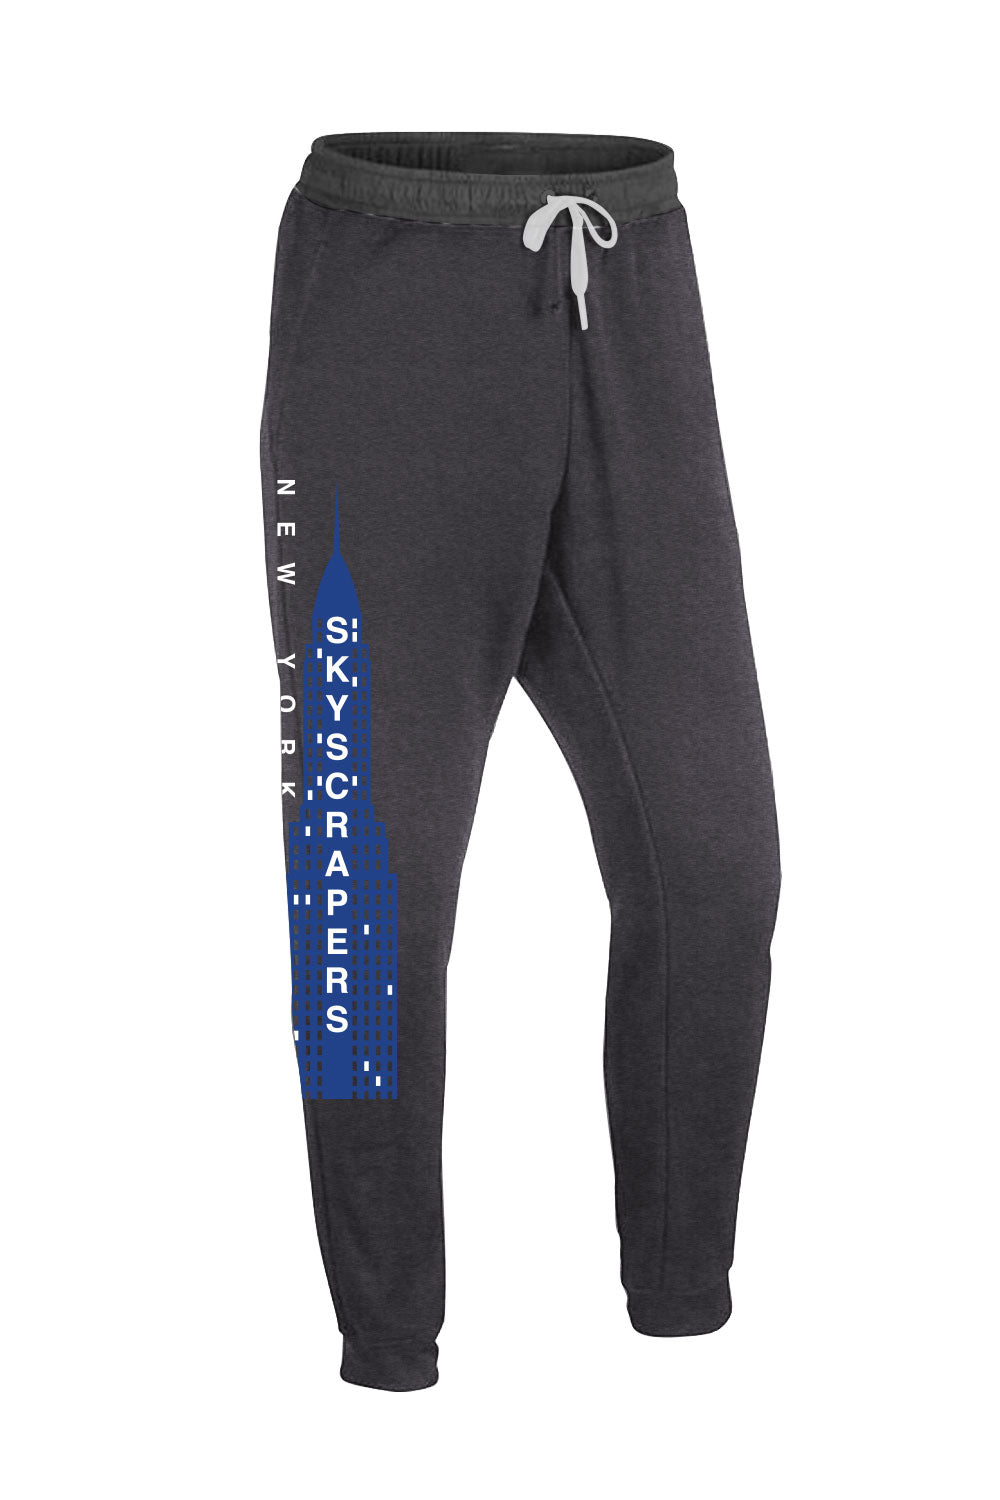 Skyscraper Joggers (Dark Heather Grey)